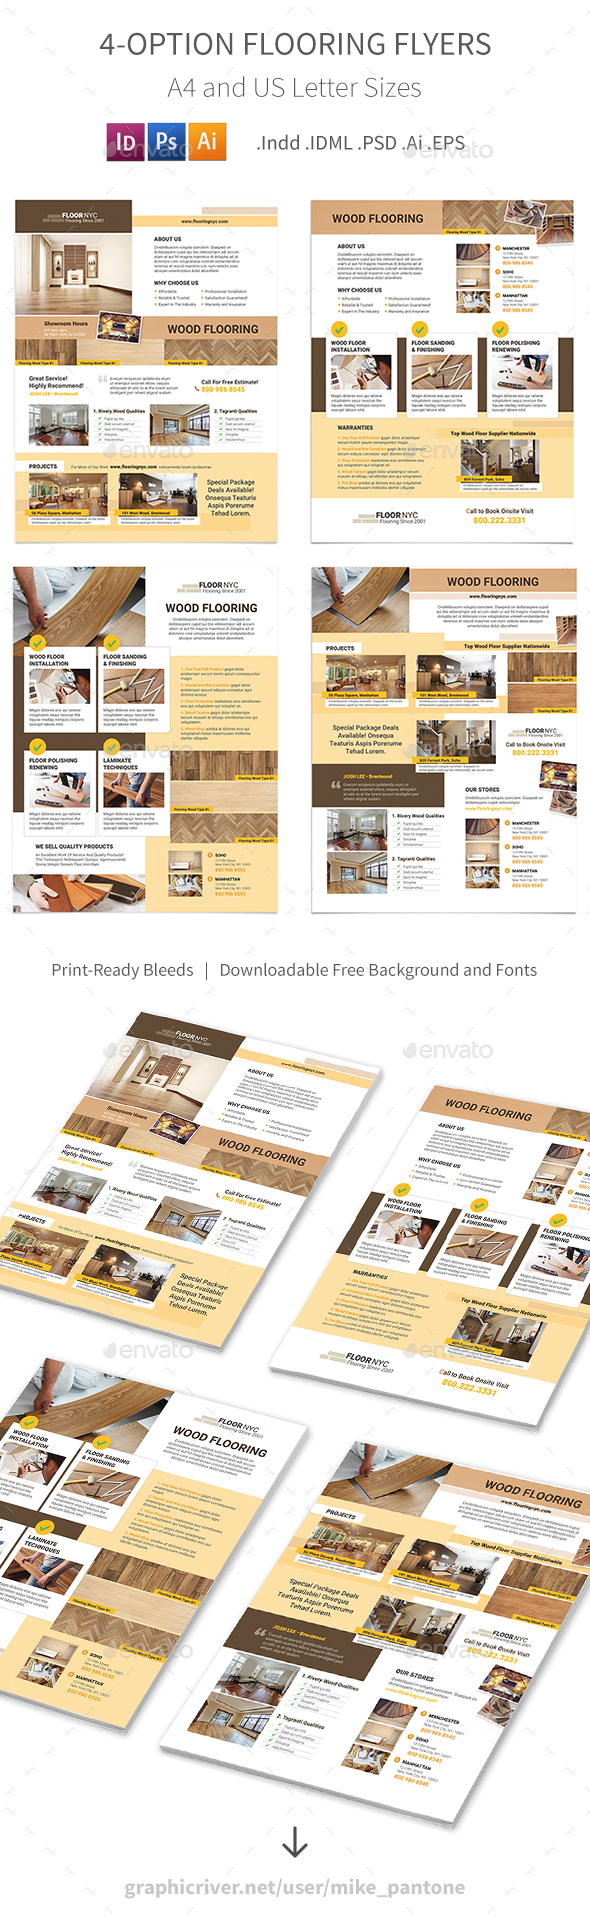 Flooring Service Flyers – 4 Options - Corporate Flyers